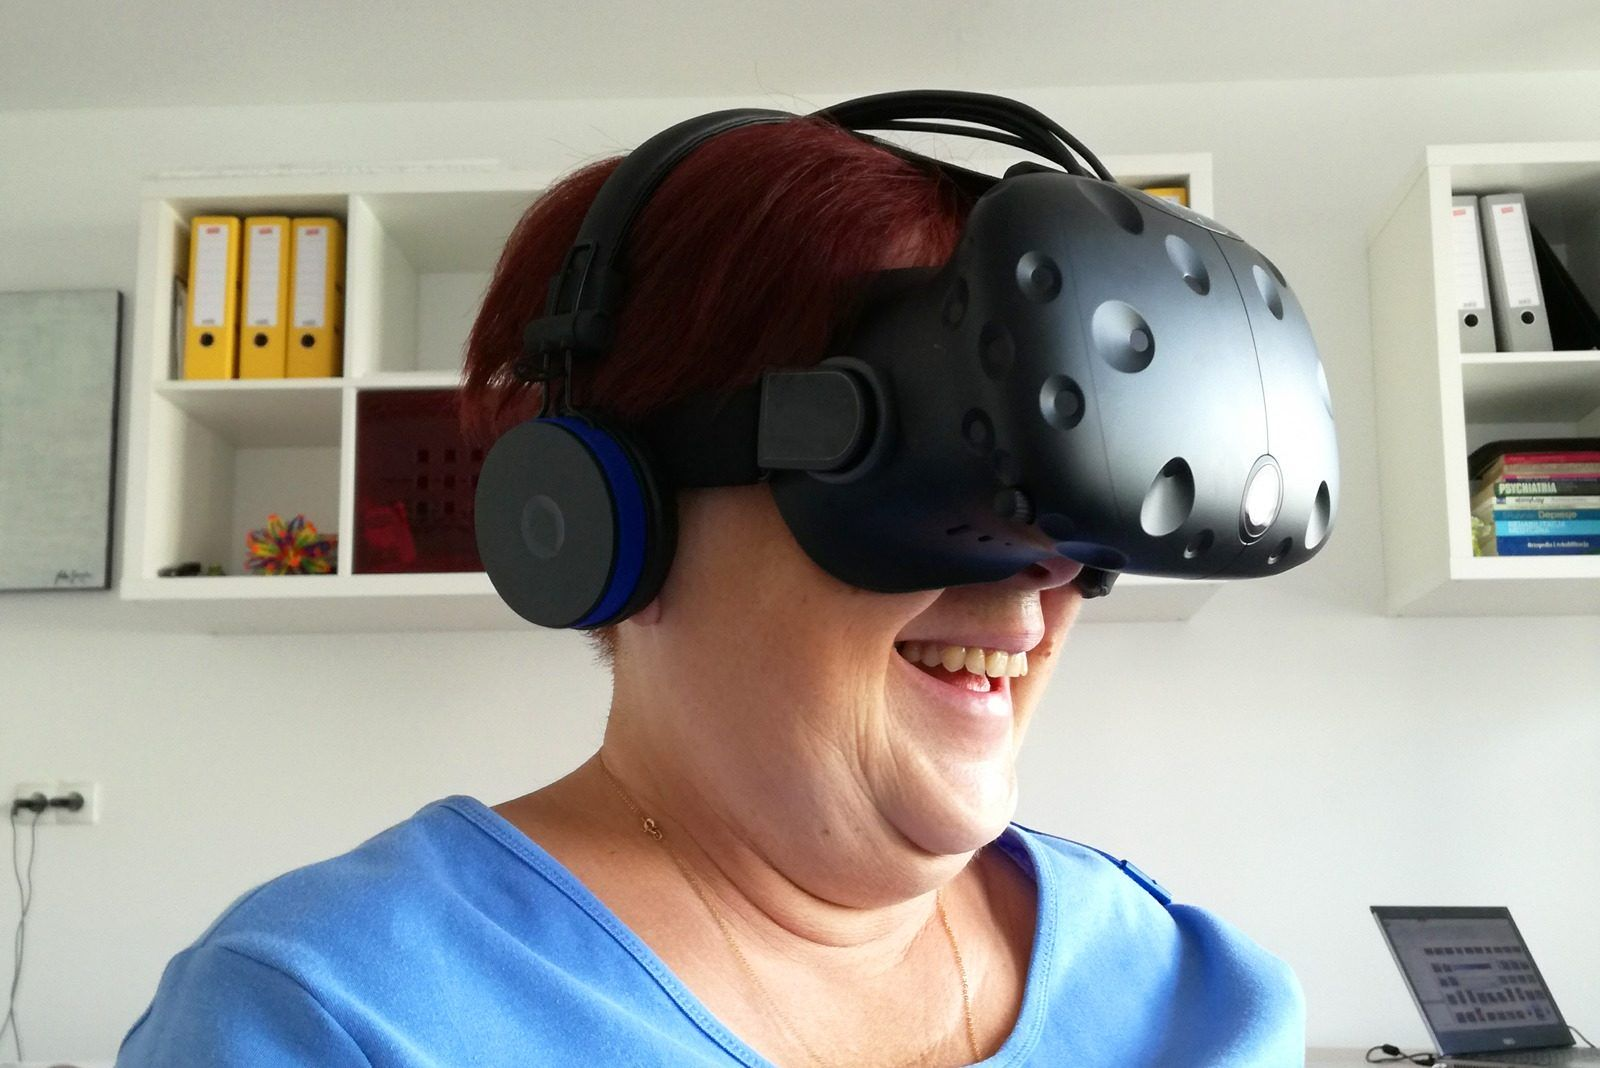 VR TierOne in the practice of neurological rehabilitation